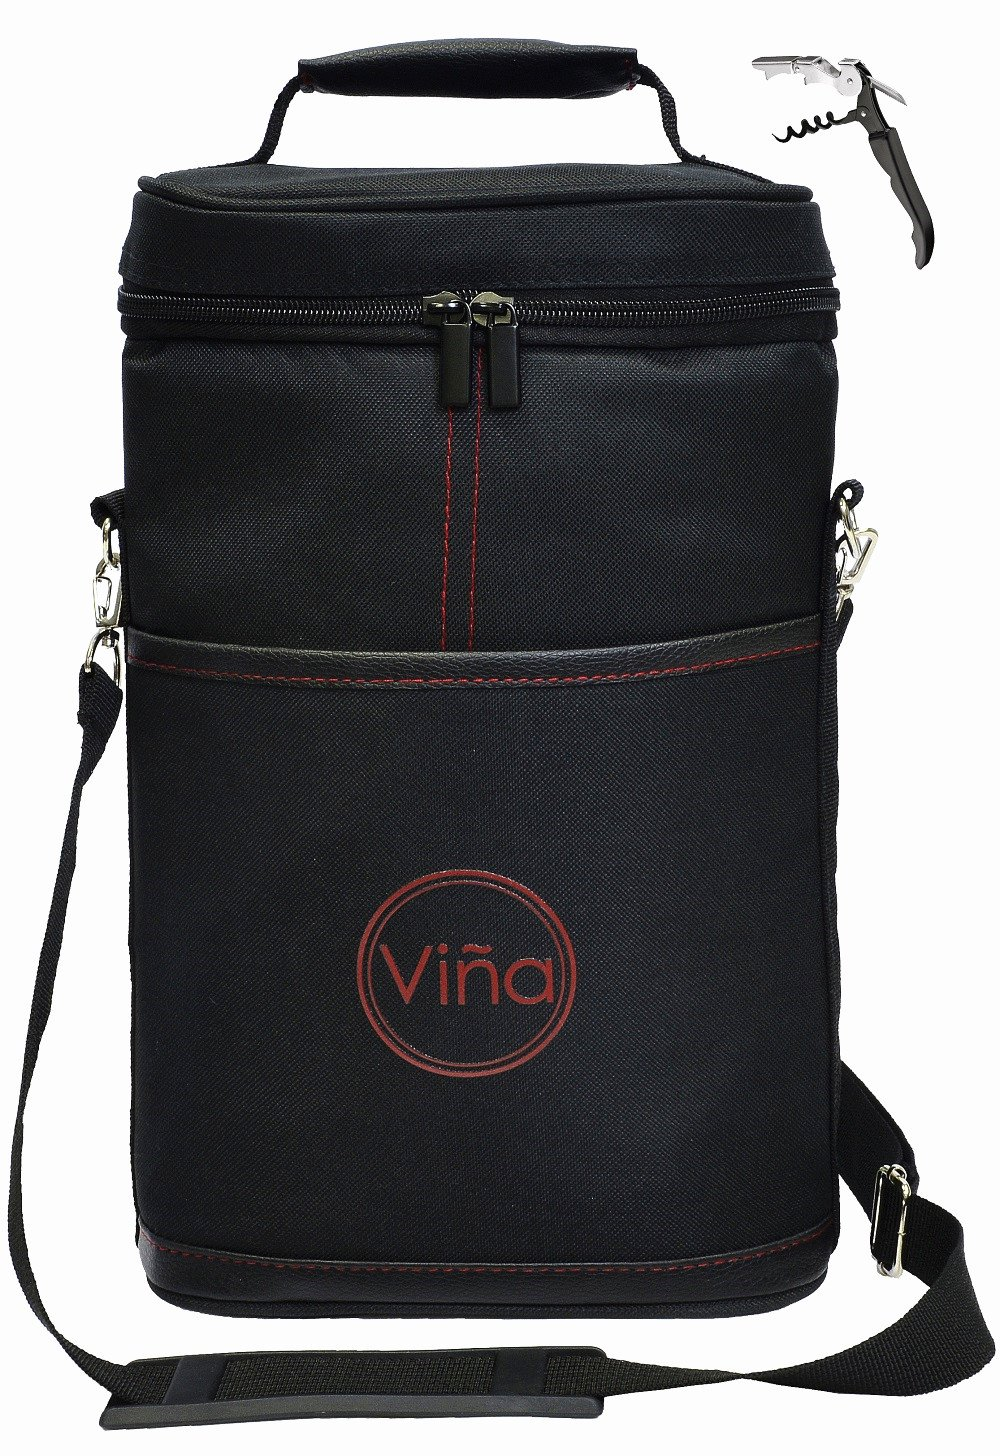 Vina 2 Bottle Wine Tote Carrier, Portable Insulated Carrying Bag Wine Holder with Adjustable Shoulder Strap + Corkscrew - Great Gift, Perfect for Travel, Beach Day